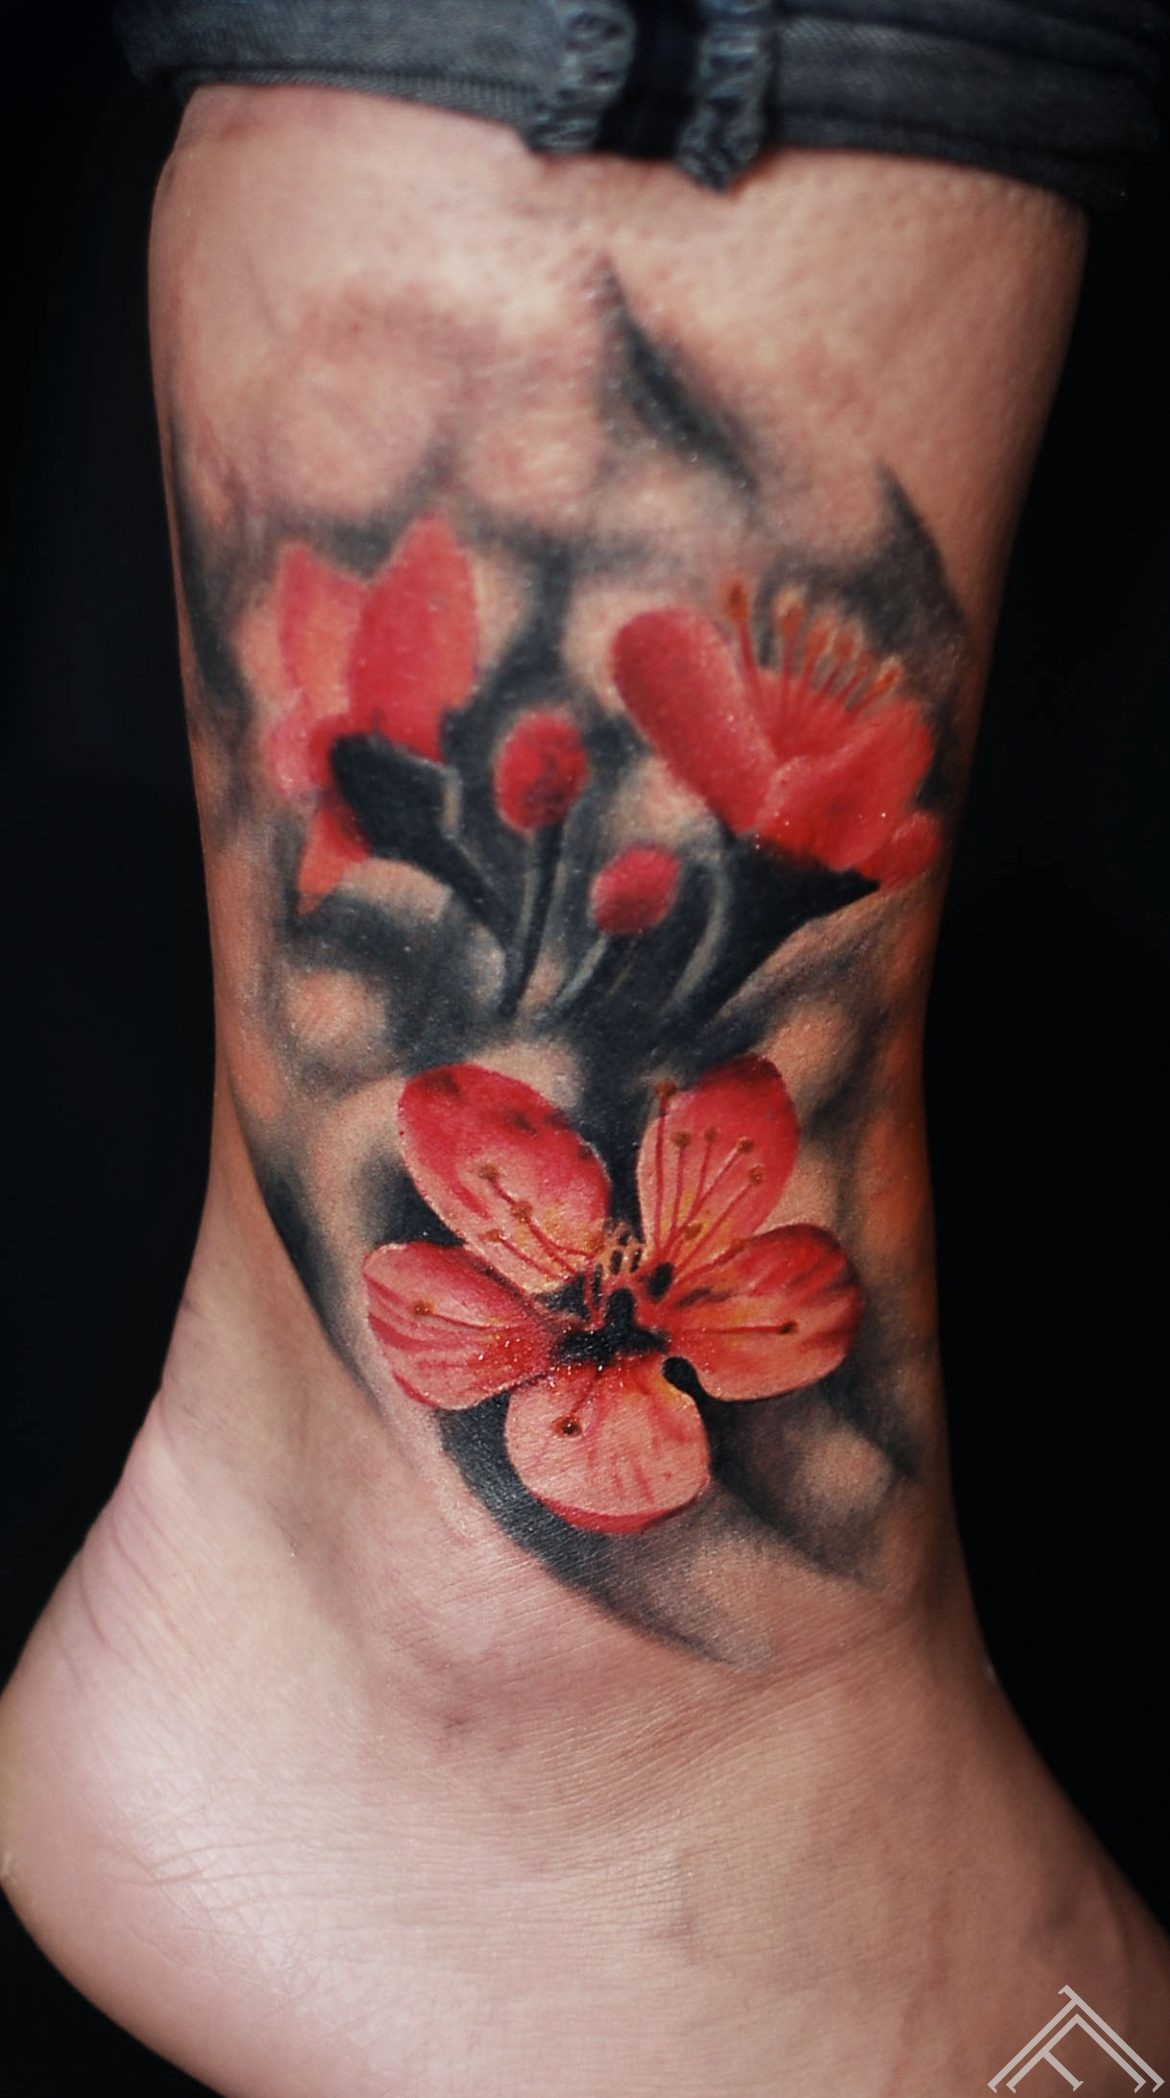 andersons_tattoo_flower_cherryblosom_tattoofrequency